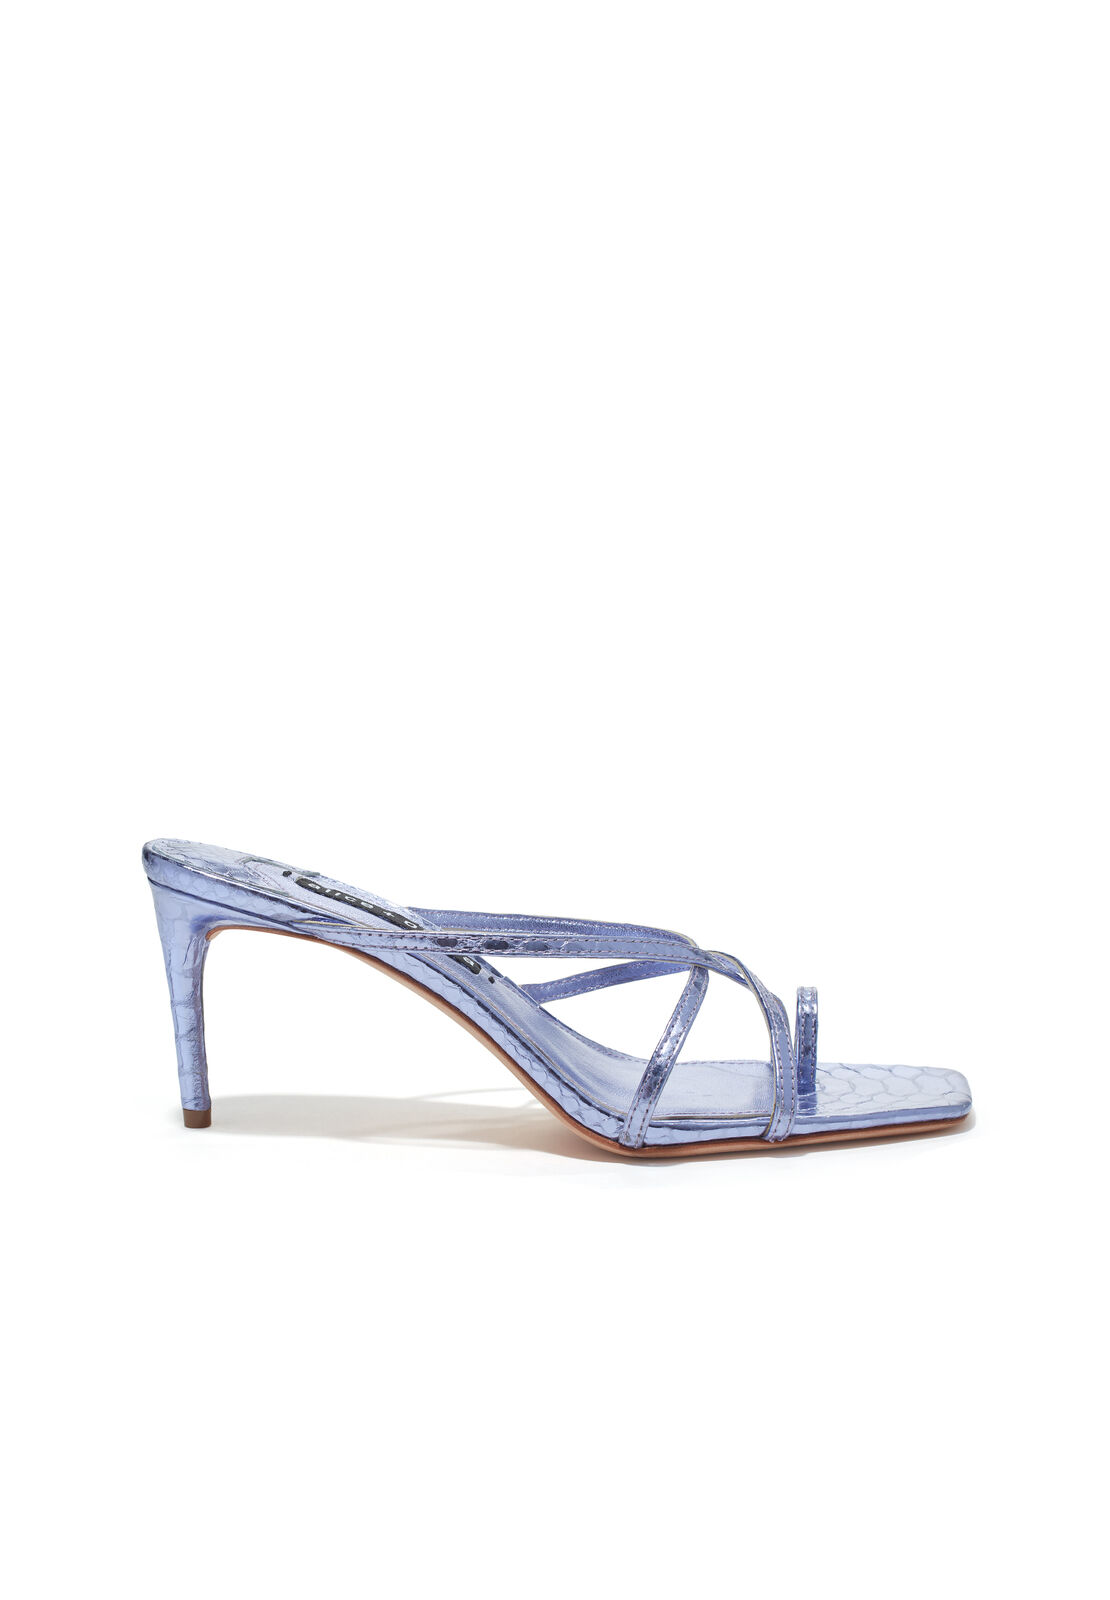 alice and olivia shoes sale